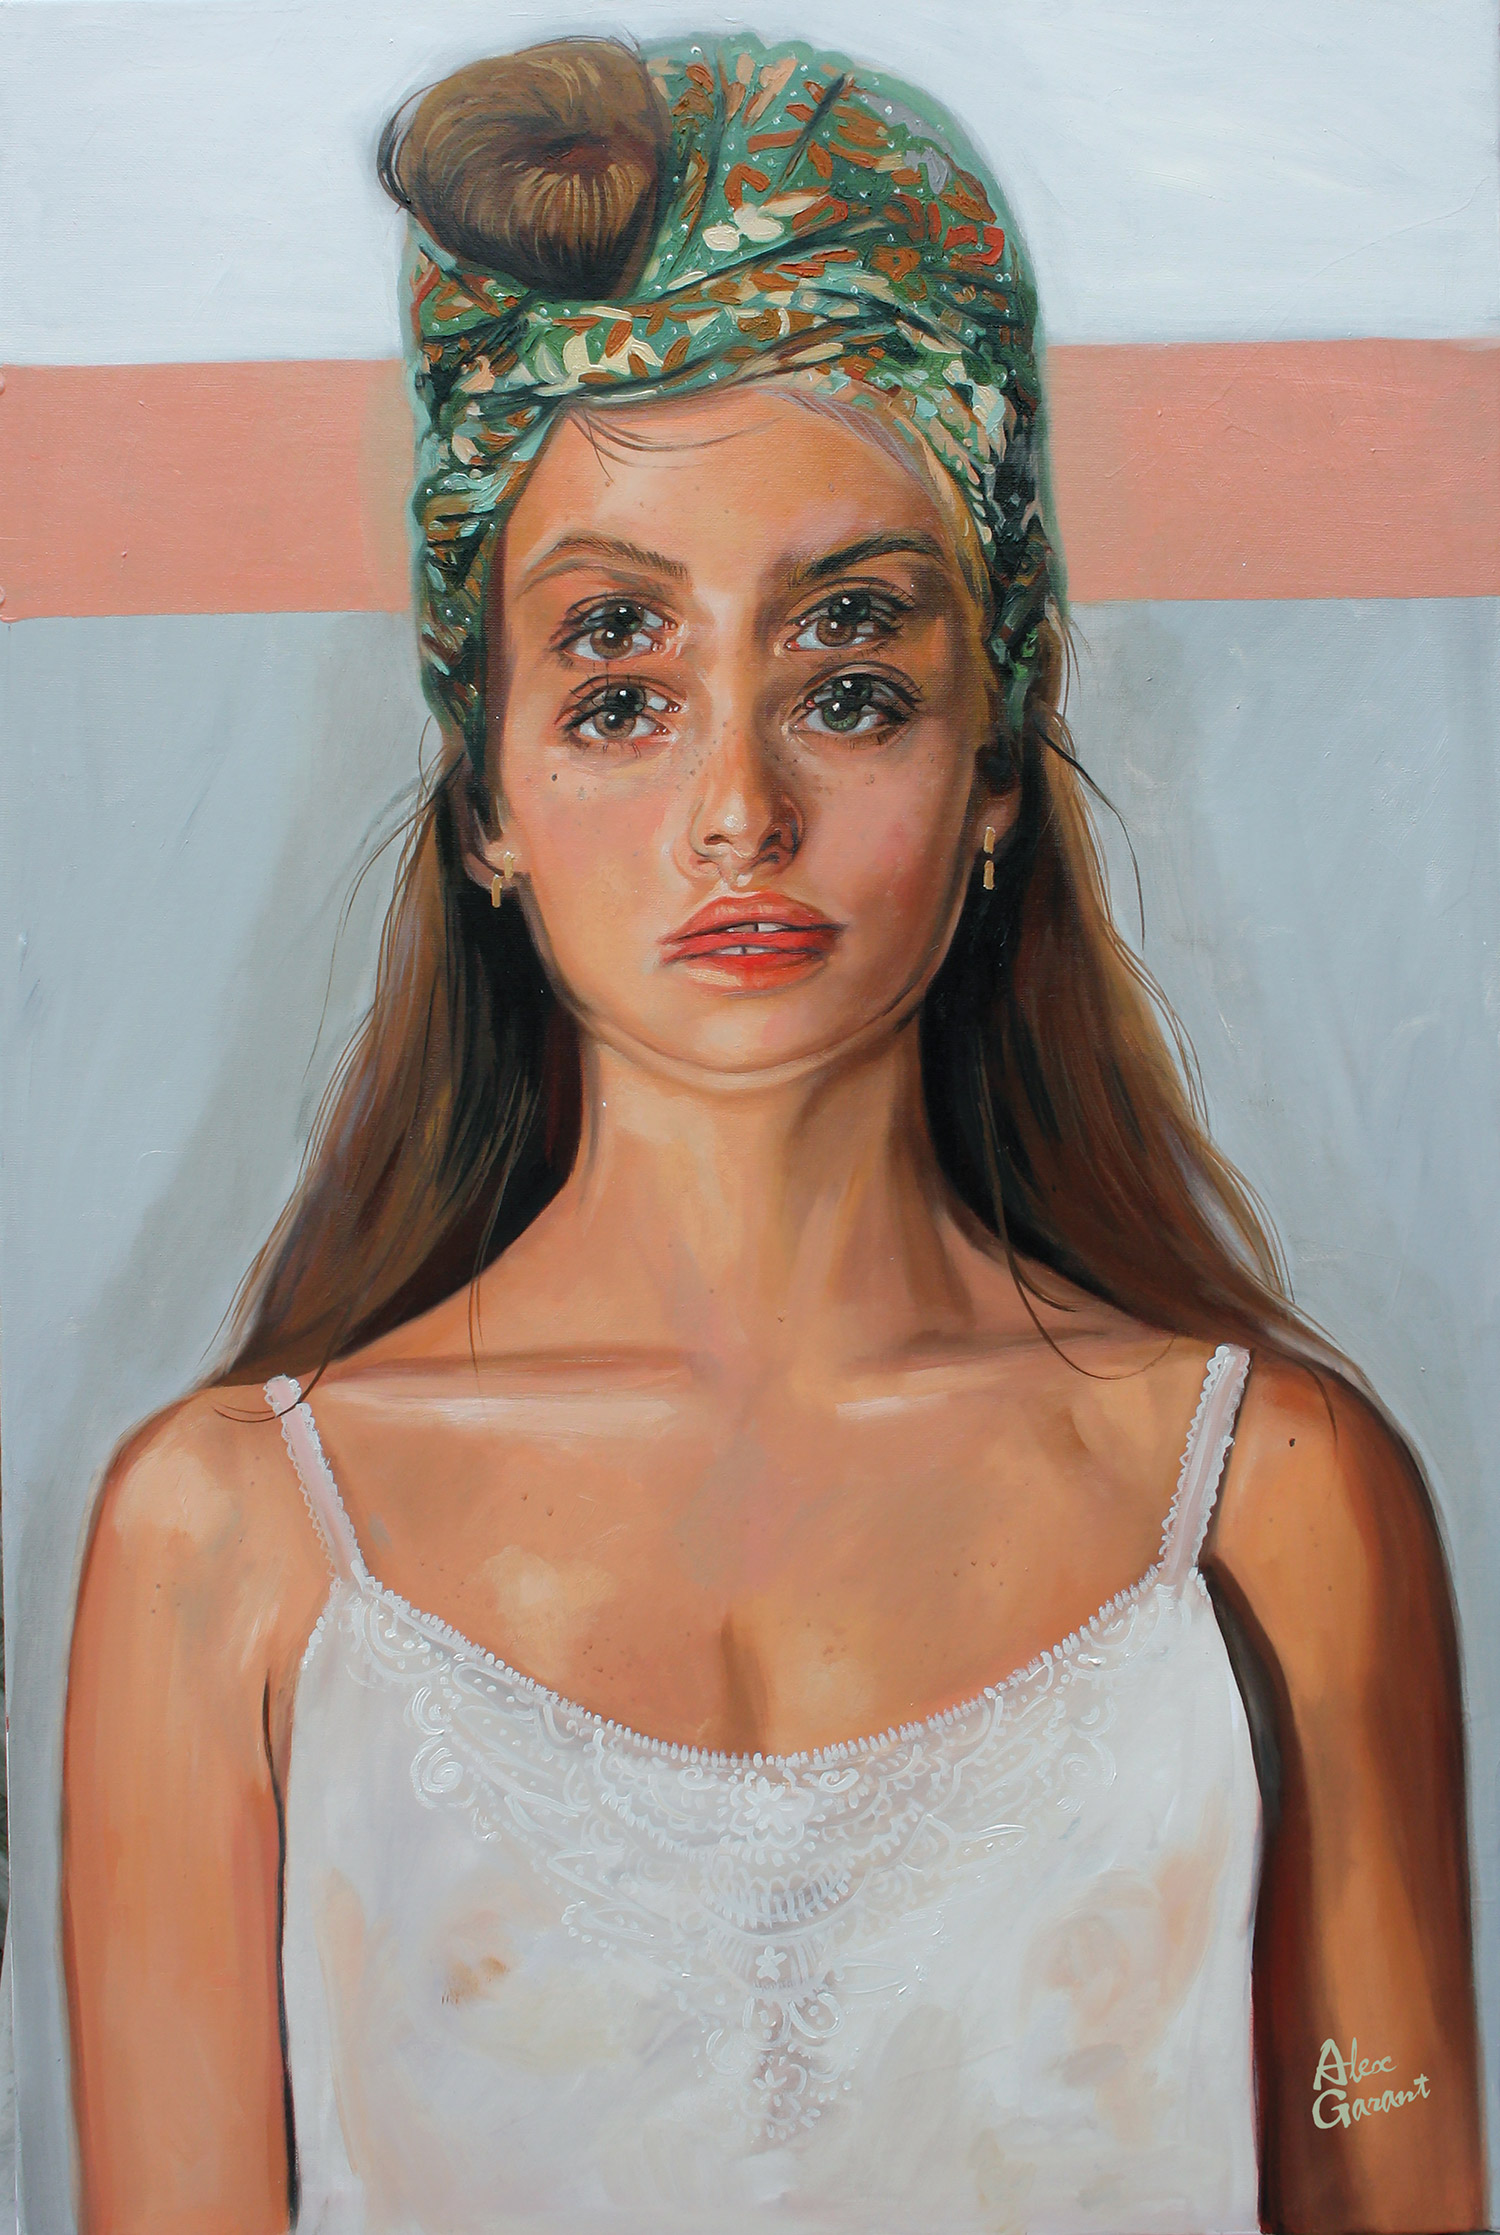 Alex Garant - Another Dusk - 2017